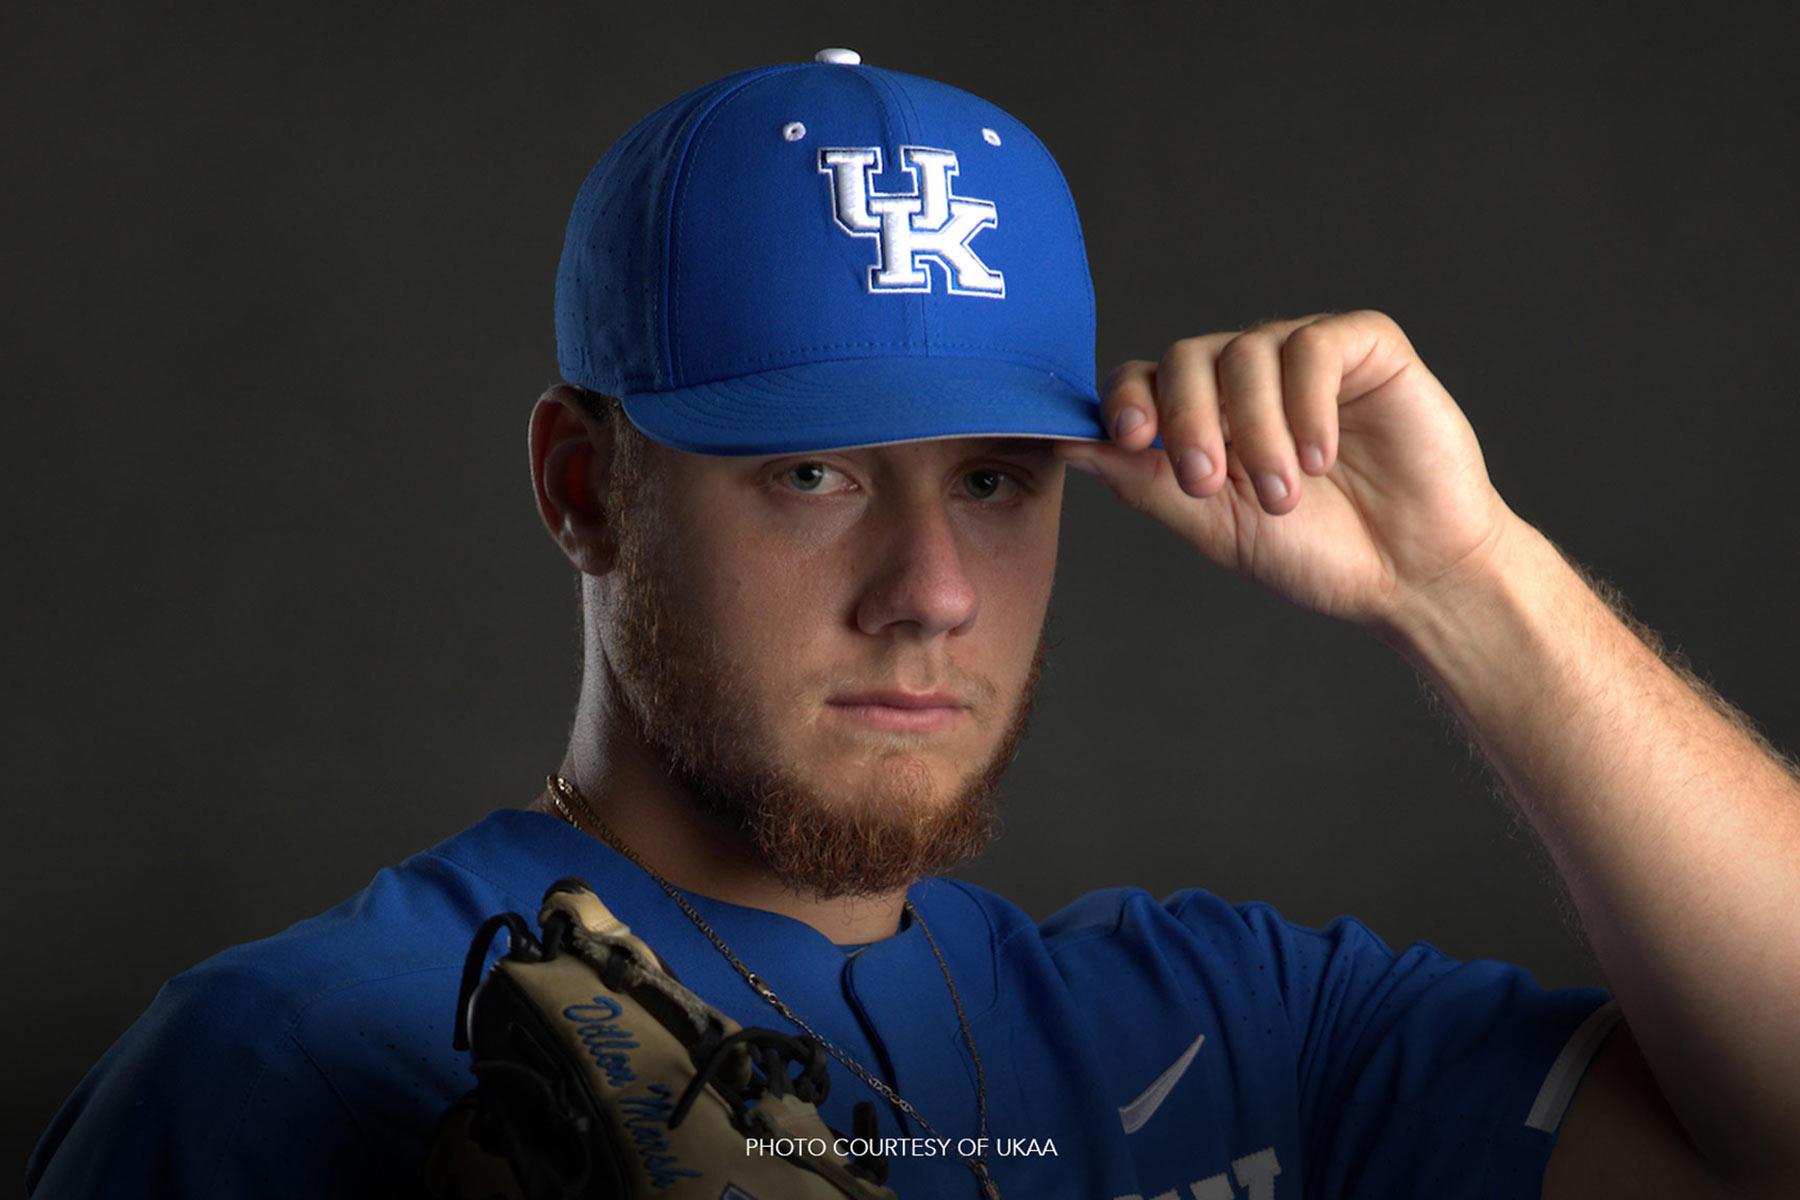 Dillon Marsh poses for a team portrait with his baseball glove and UK team baseball cap and jersey on. Photo courtesy of UKAA.